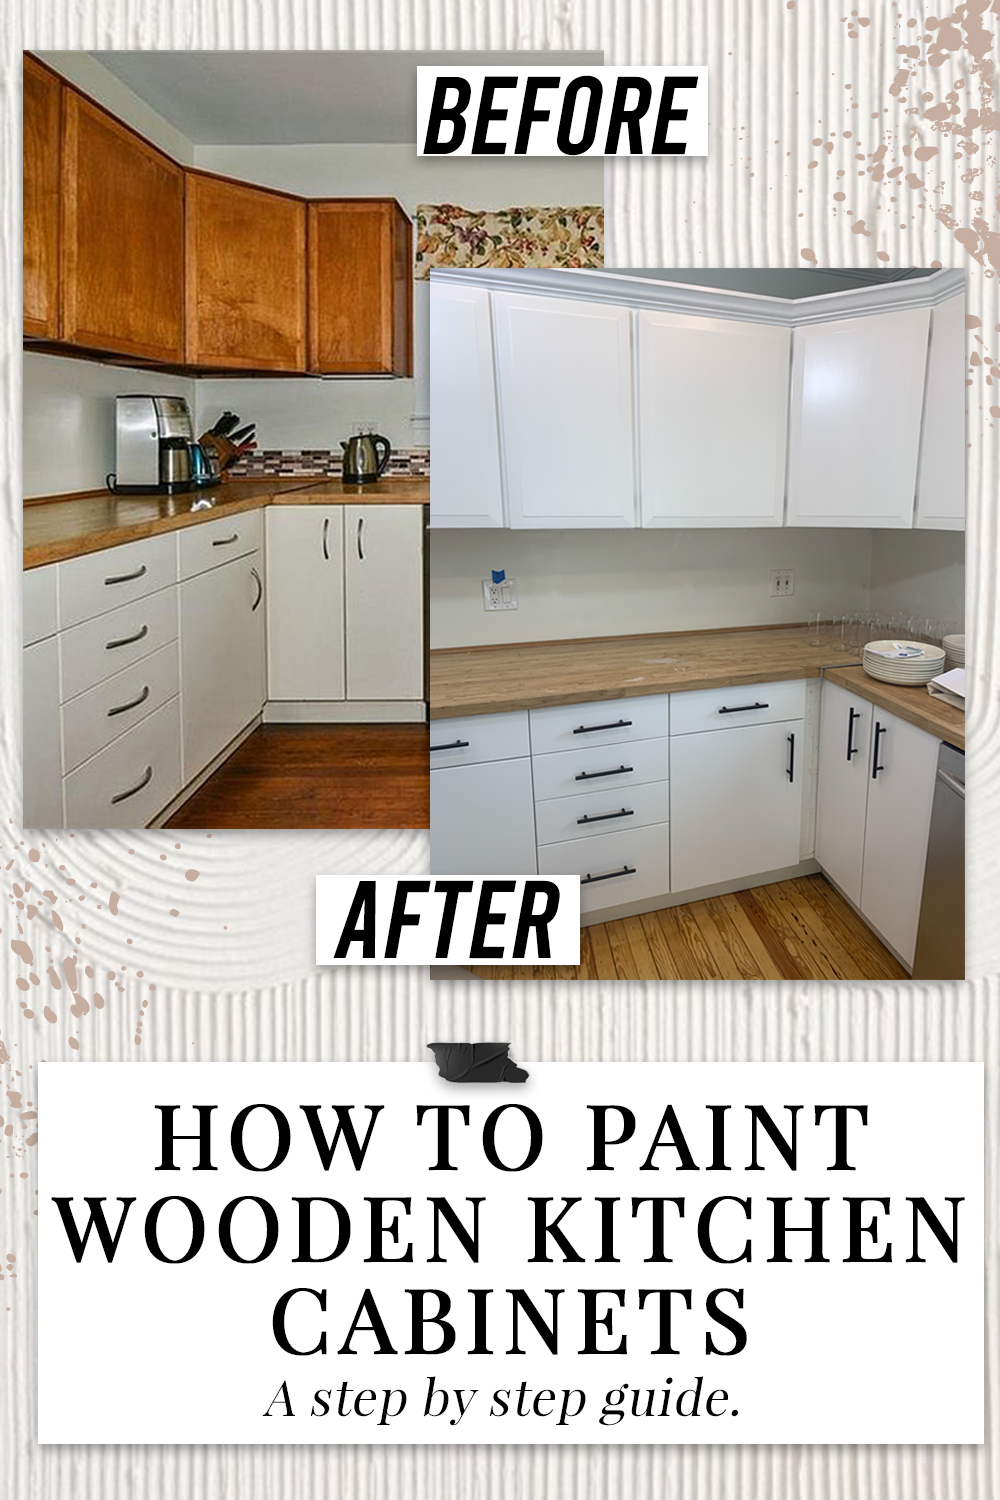 How To Paint Wooden Kitchen Cabinets Step By Step Guide